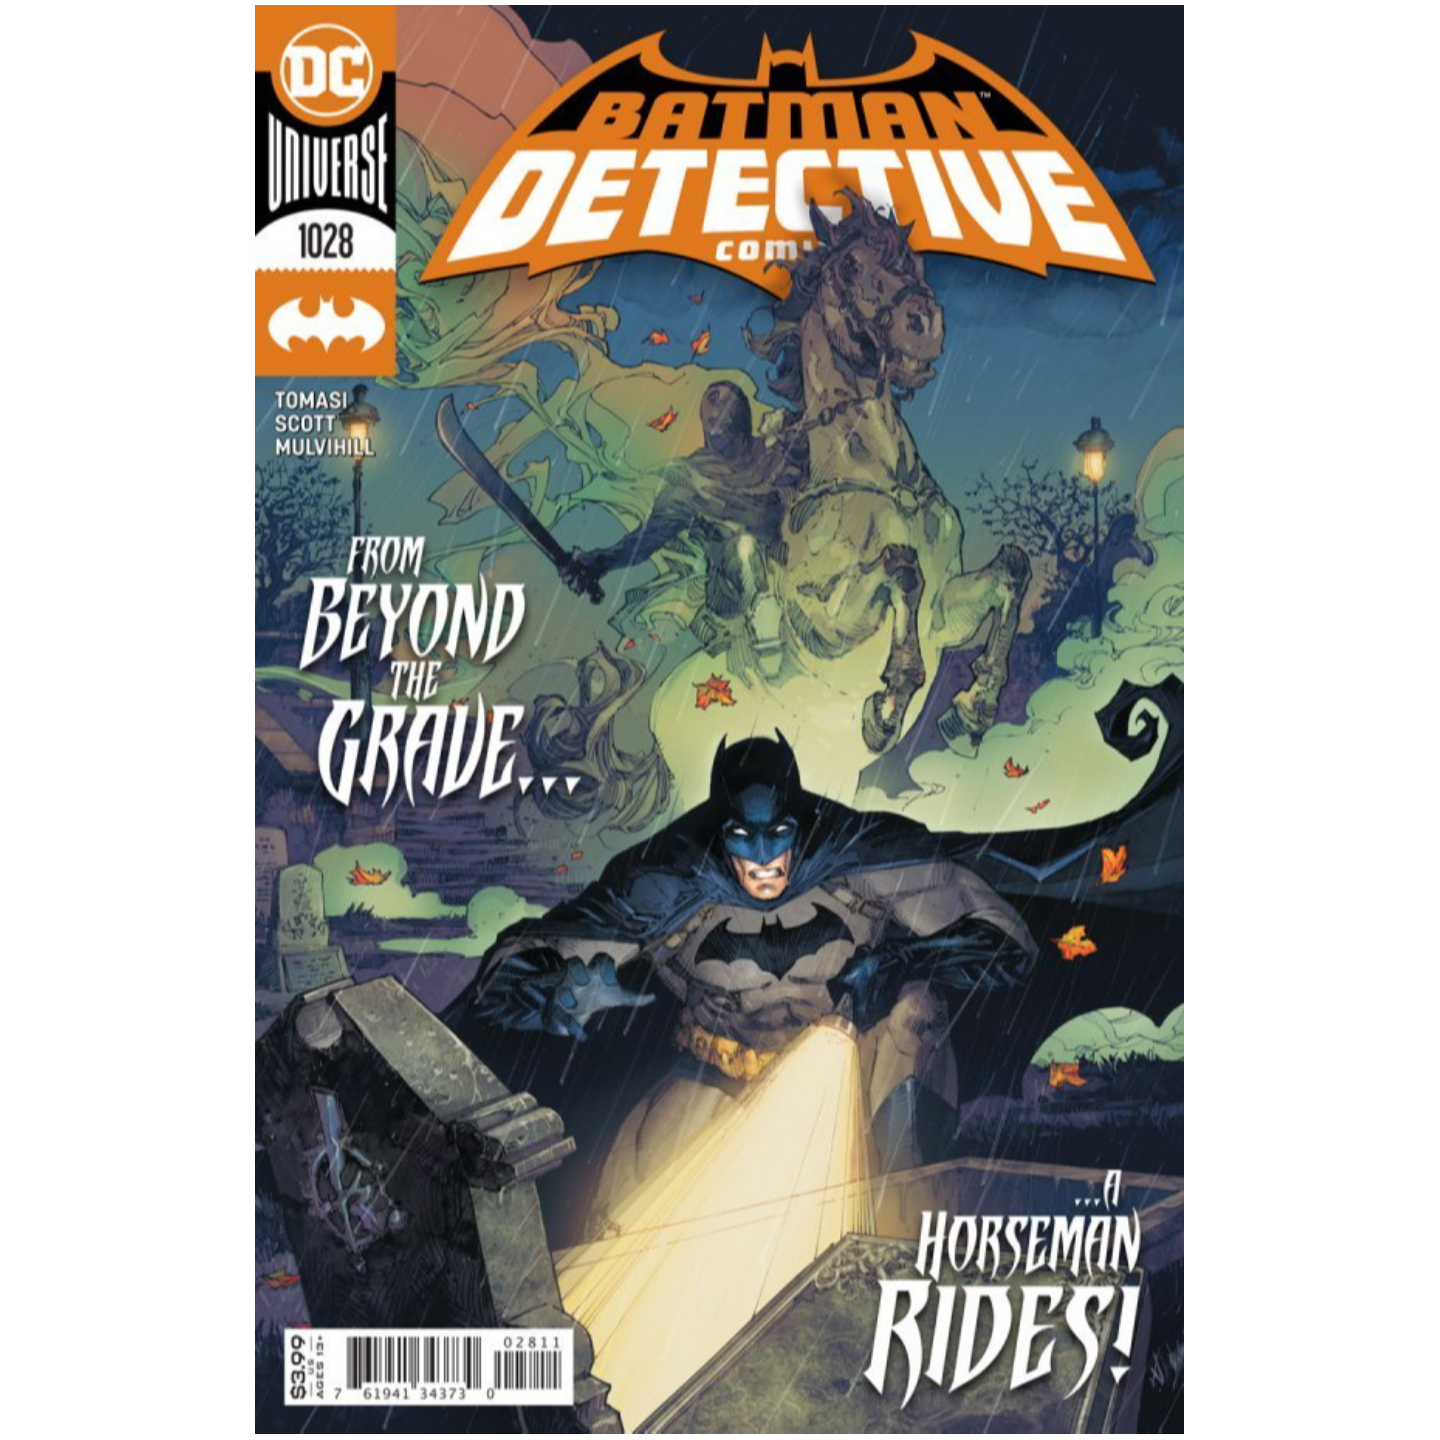 DETECTIVE COMICS #1028 CVR A KENNETH ROCAFORT